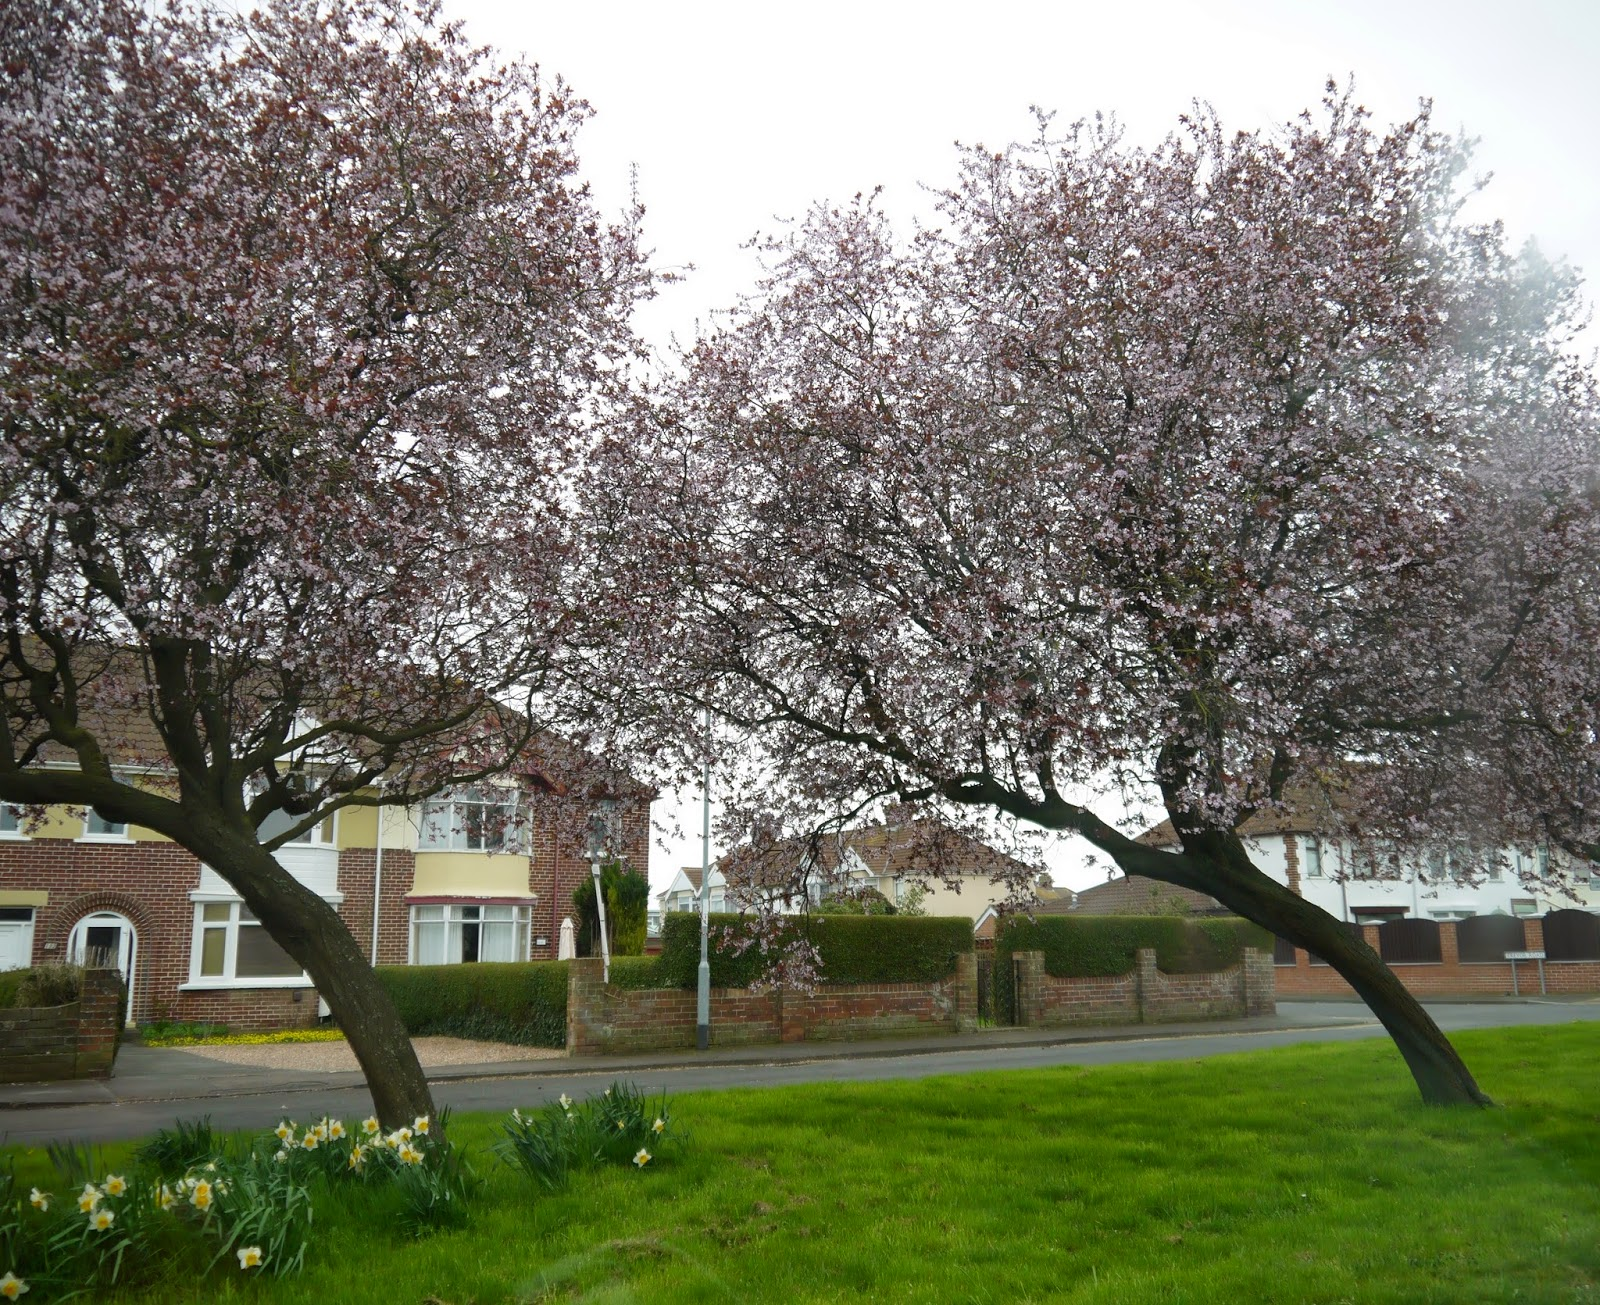 Blossom trees in Bridgwater